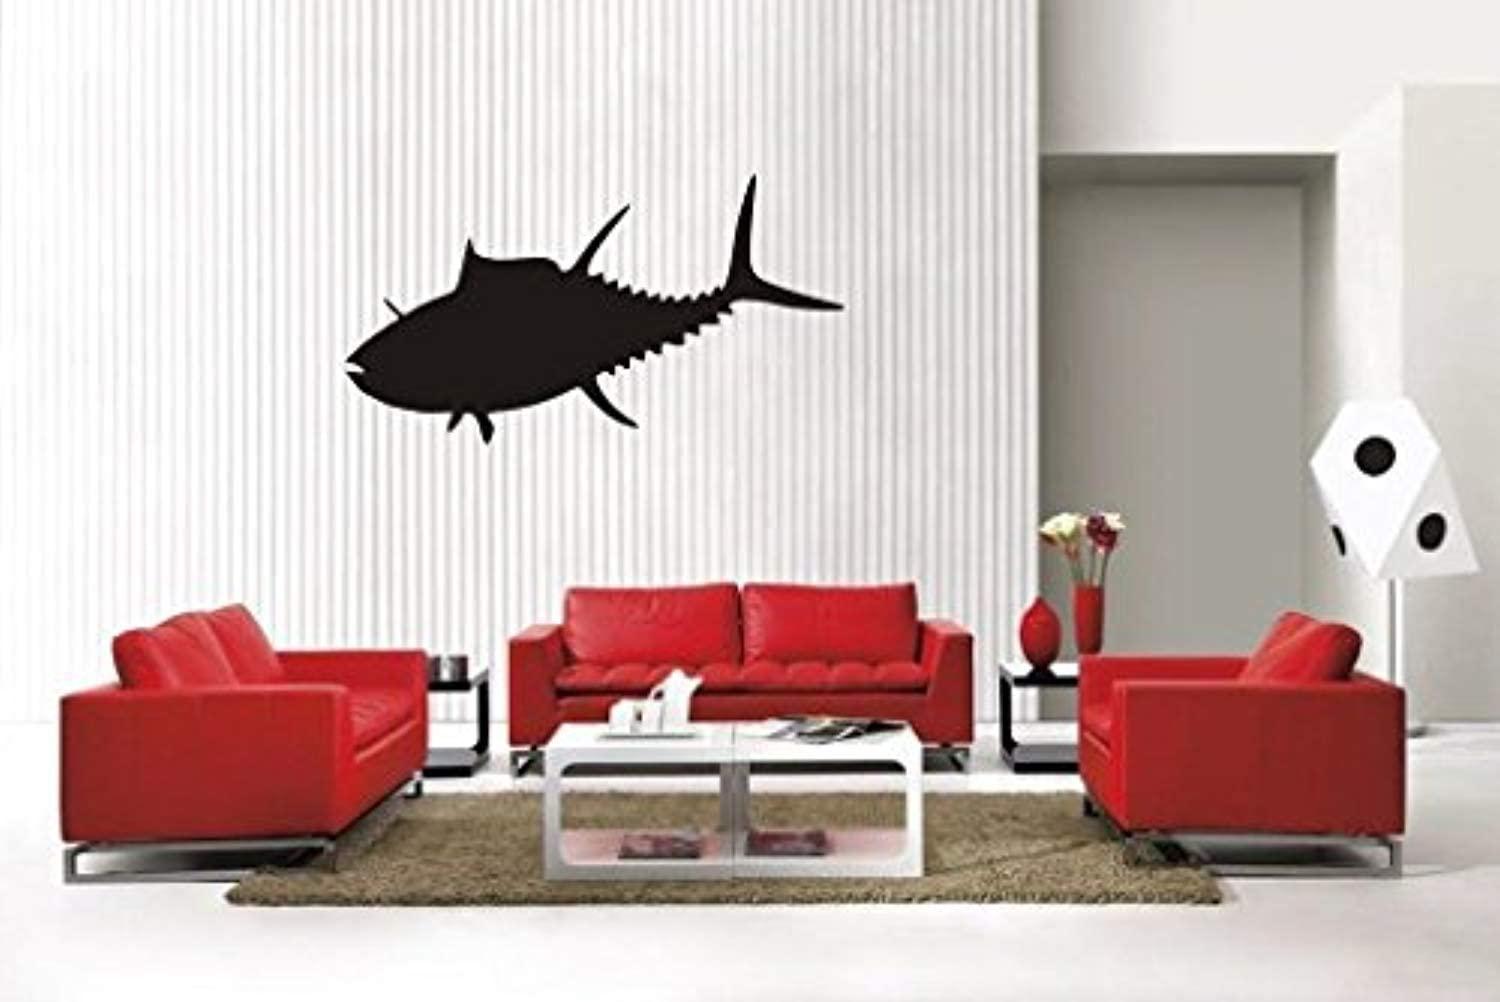 A Design World Home Quotes Wall Stickers Tuna Fish Sty3 Removable Vinyl Wall Decal Home Decor for Bedroom Living Room Office Family